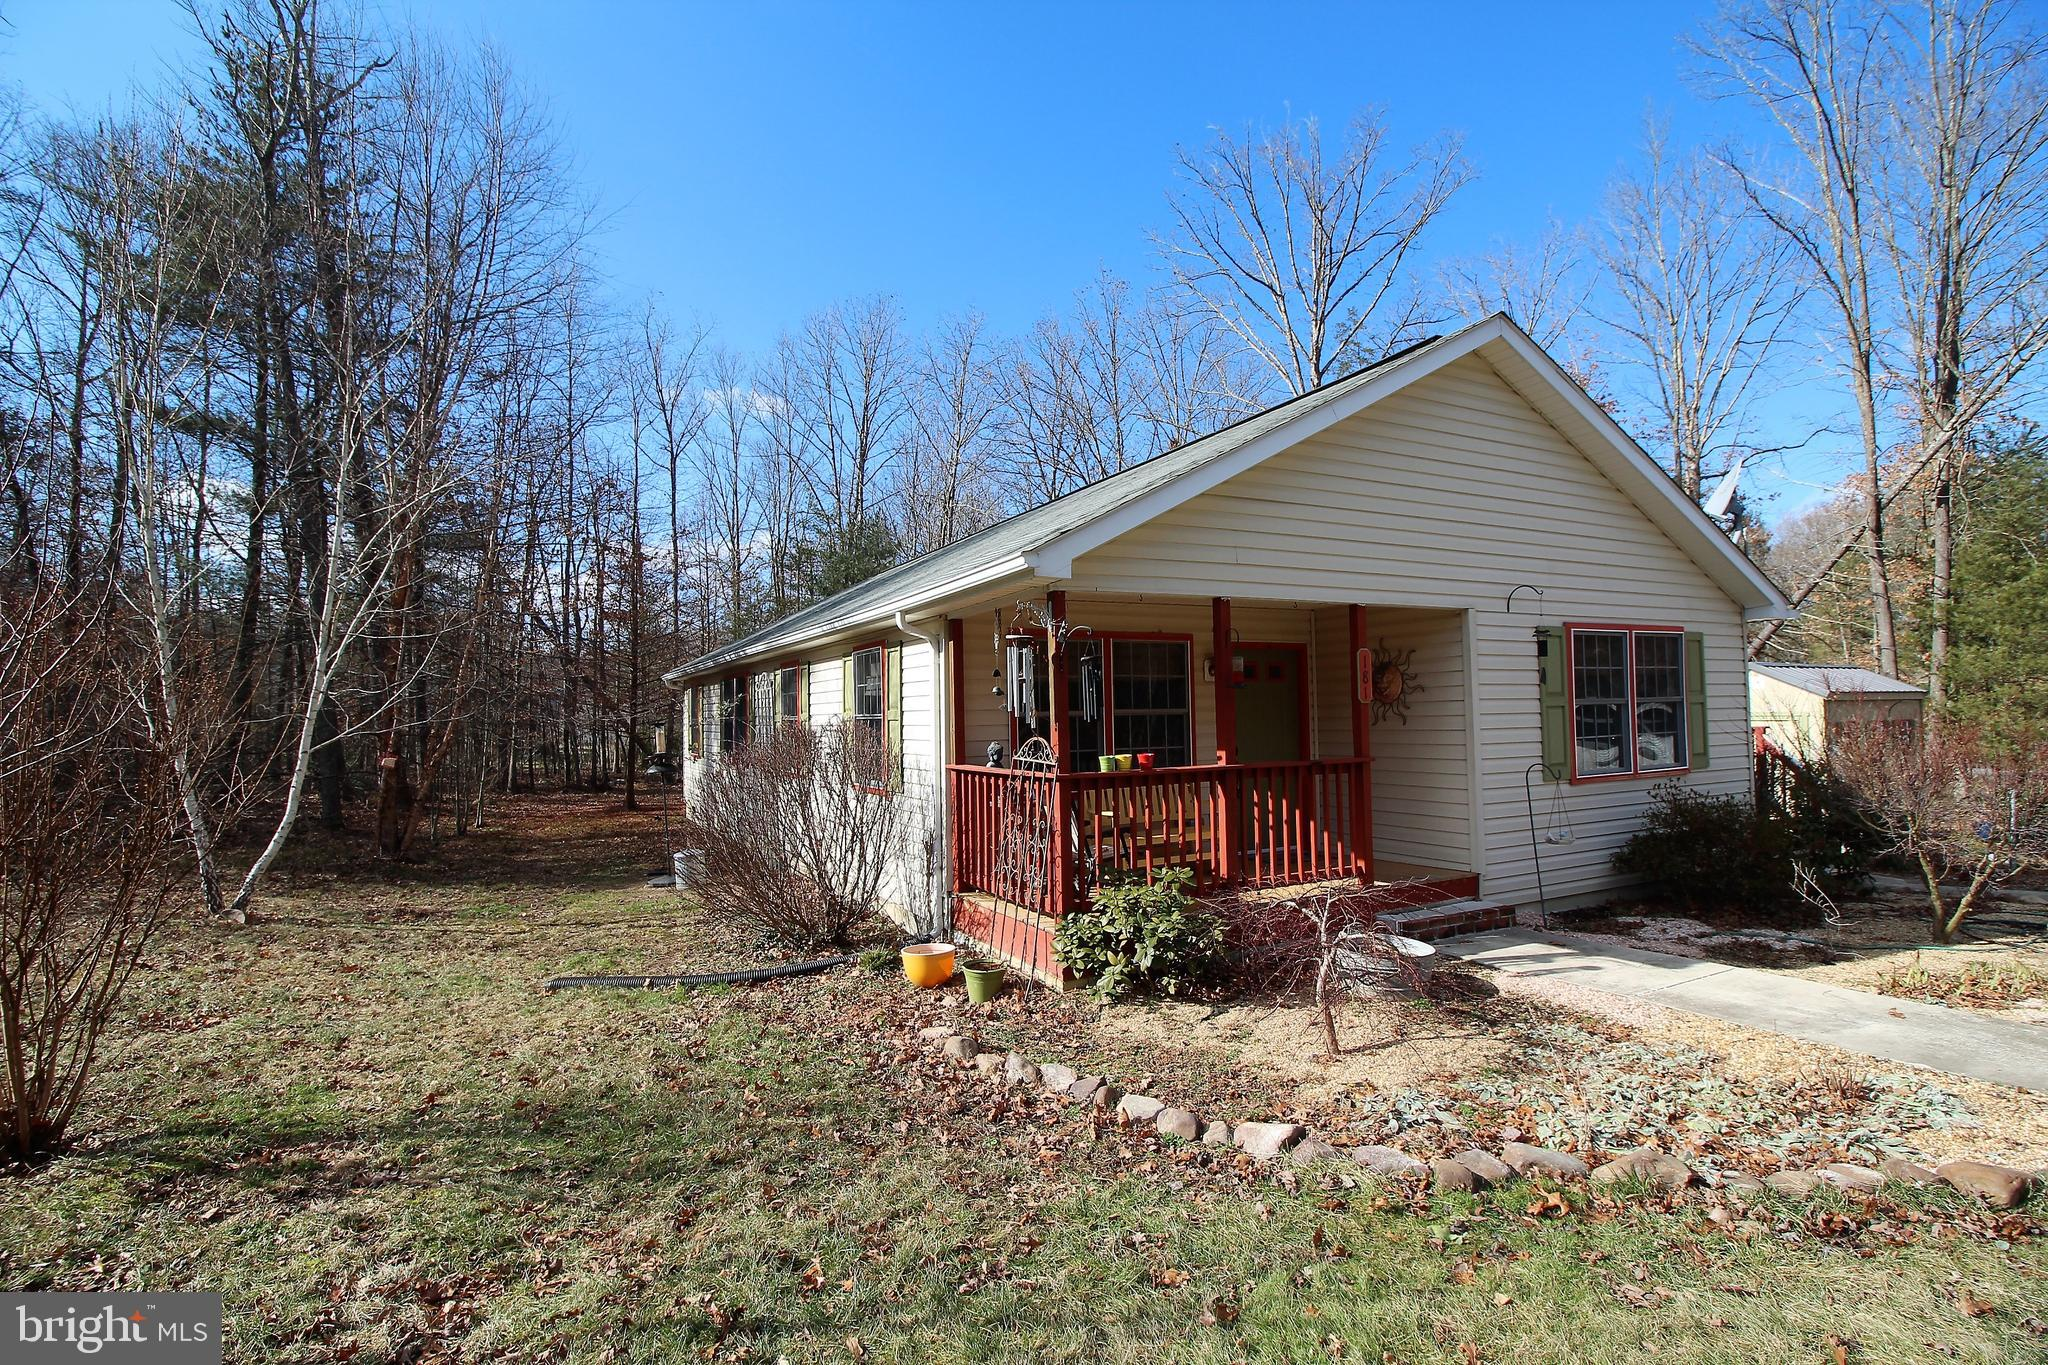 181 WARDEN CIRCLE ROAD, WARDENSVILLE, WV 26851